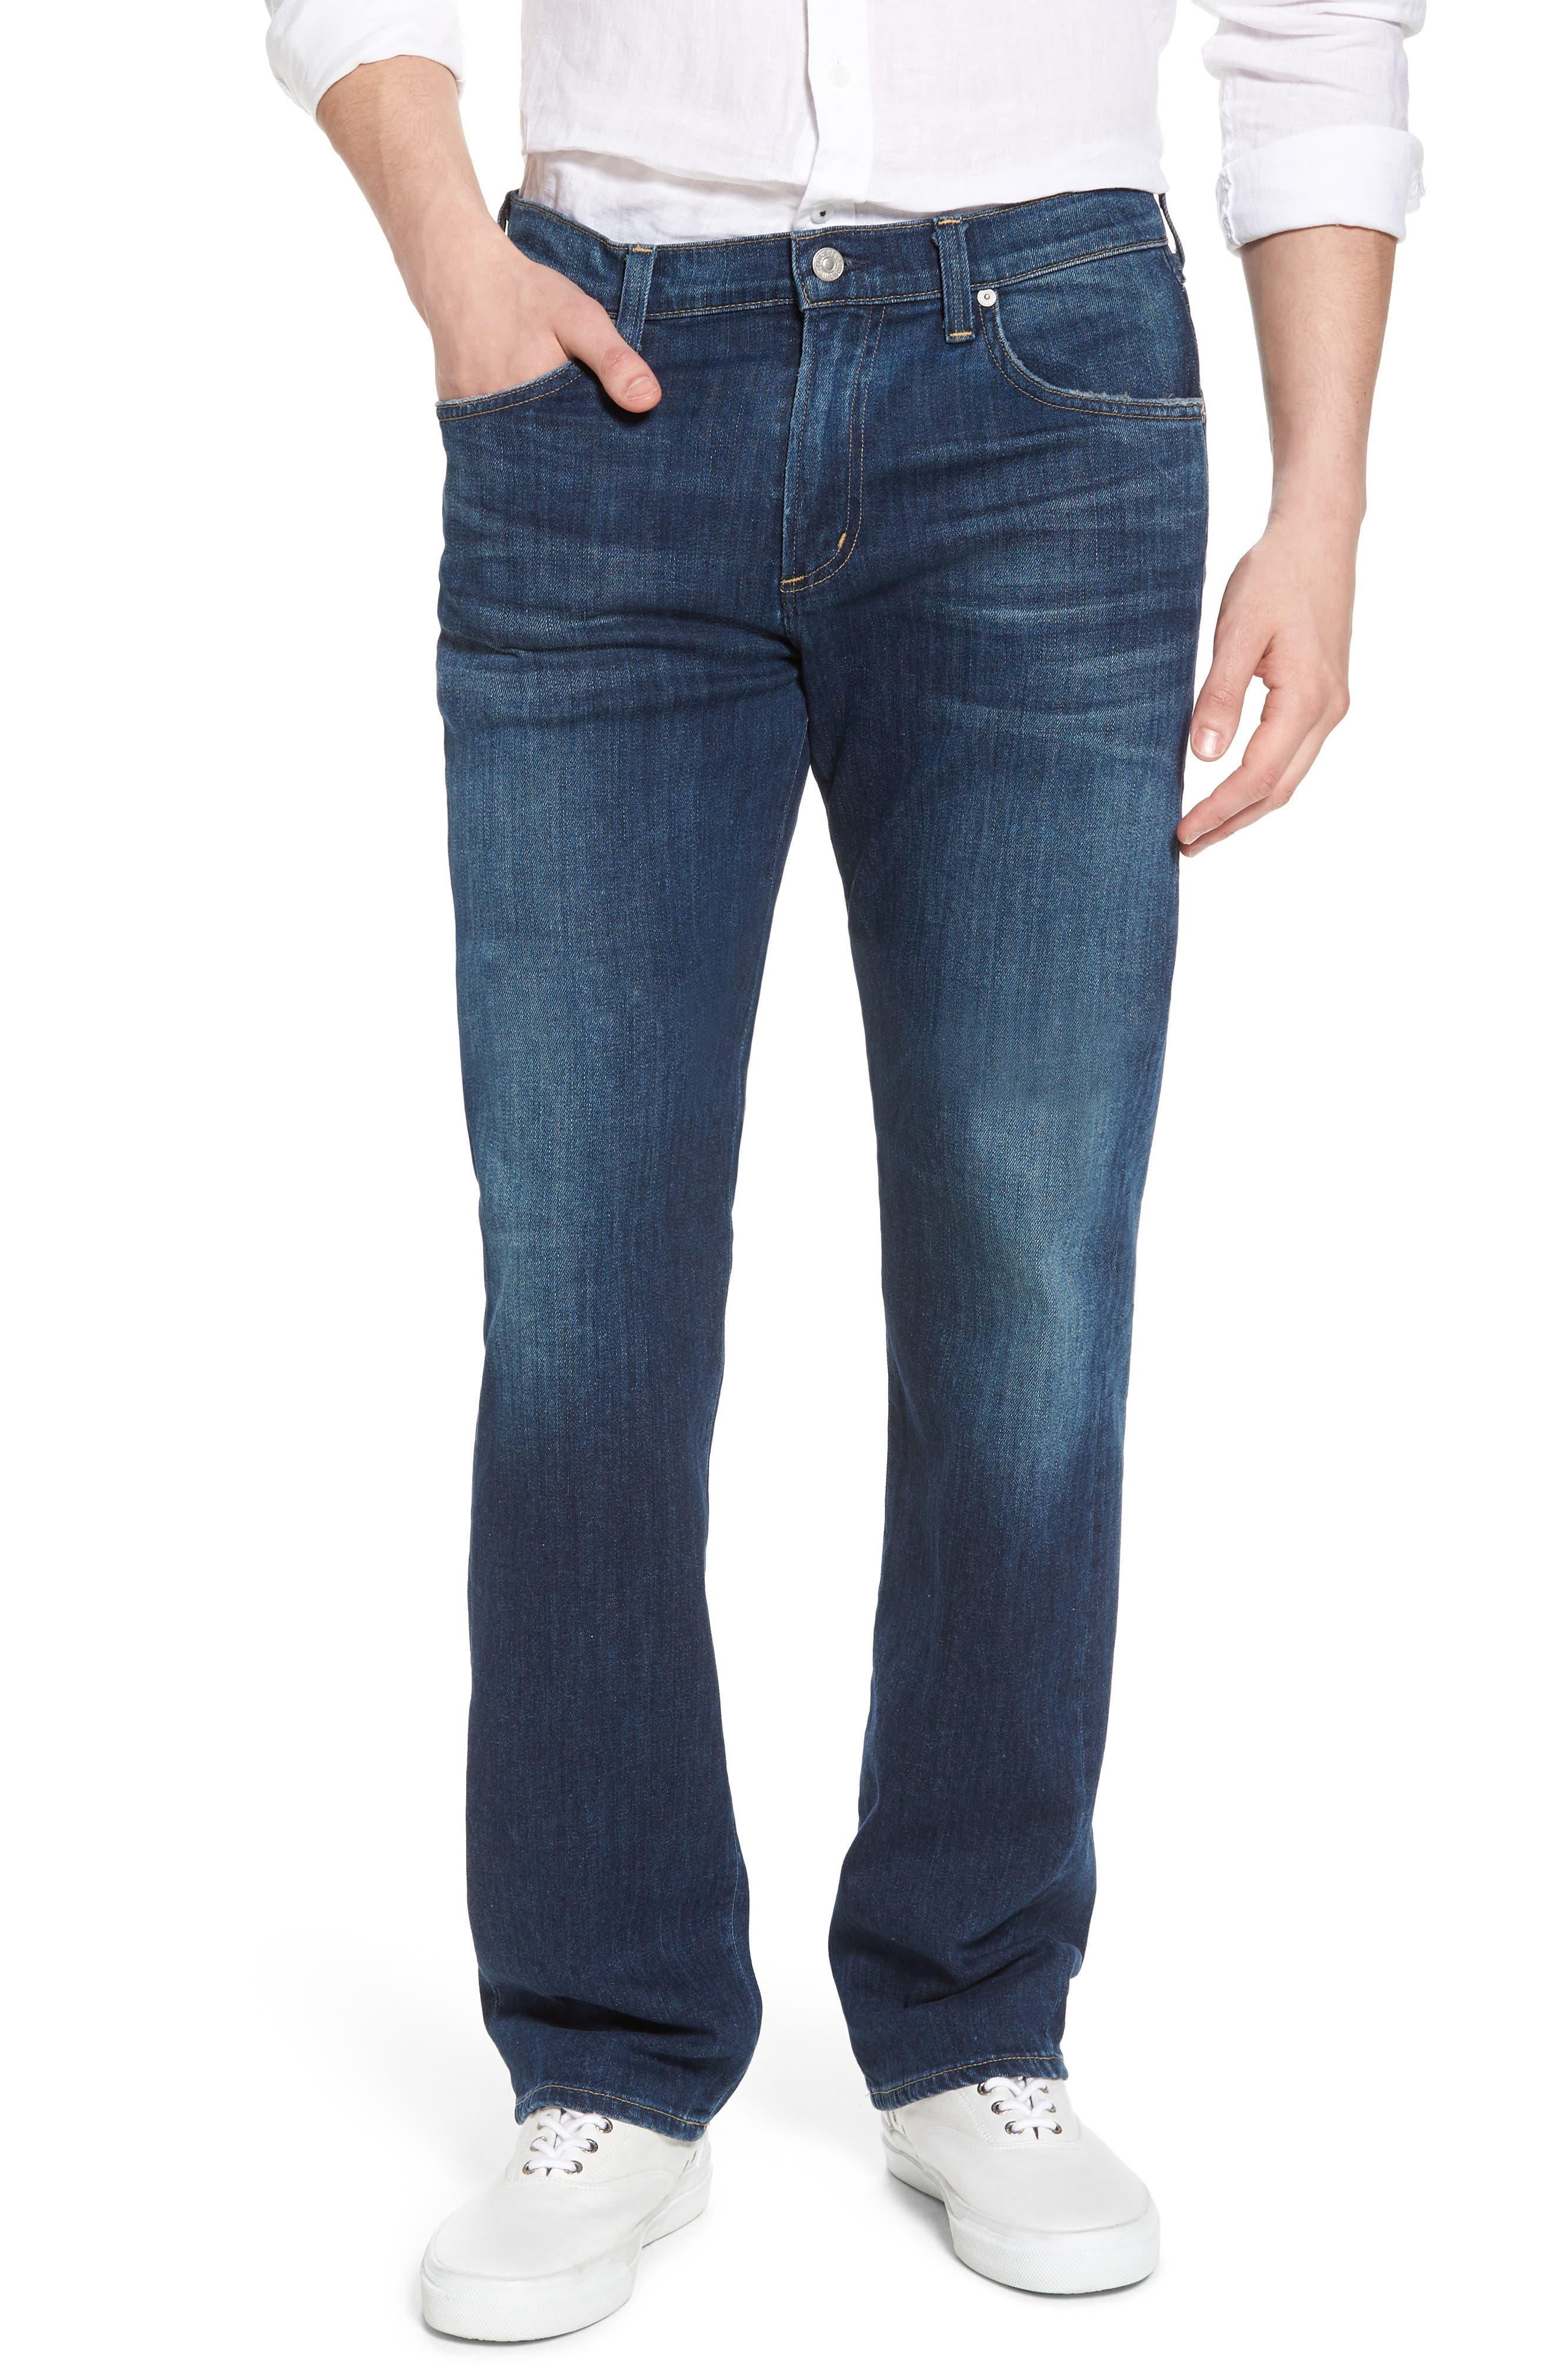 Sid Straight Leg Jeans,                             Main thumbnail 1, color,                             Adler